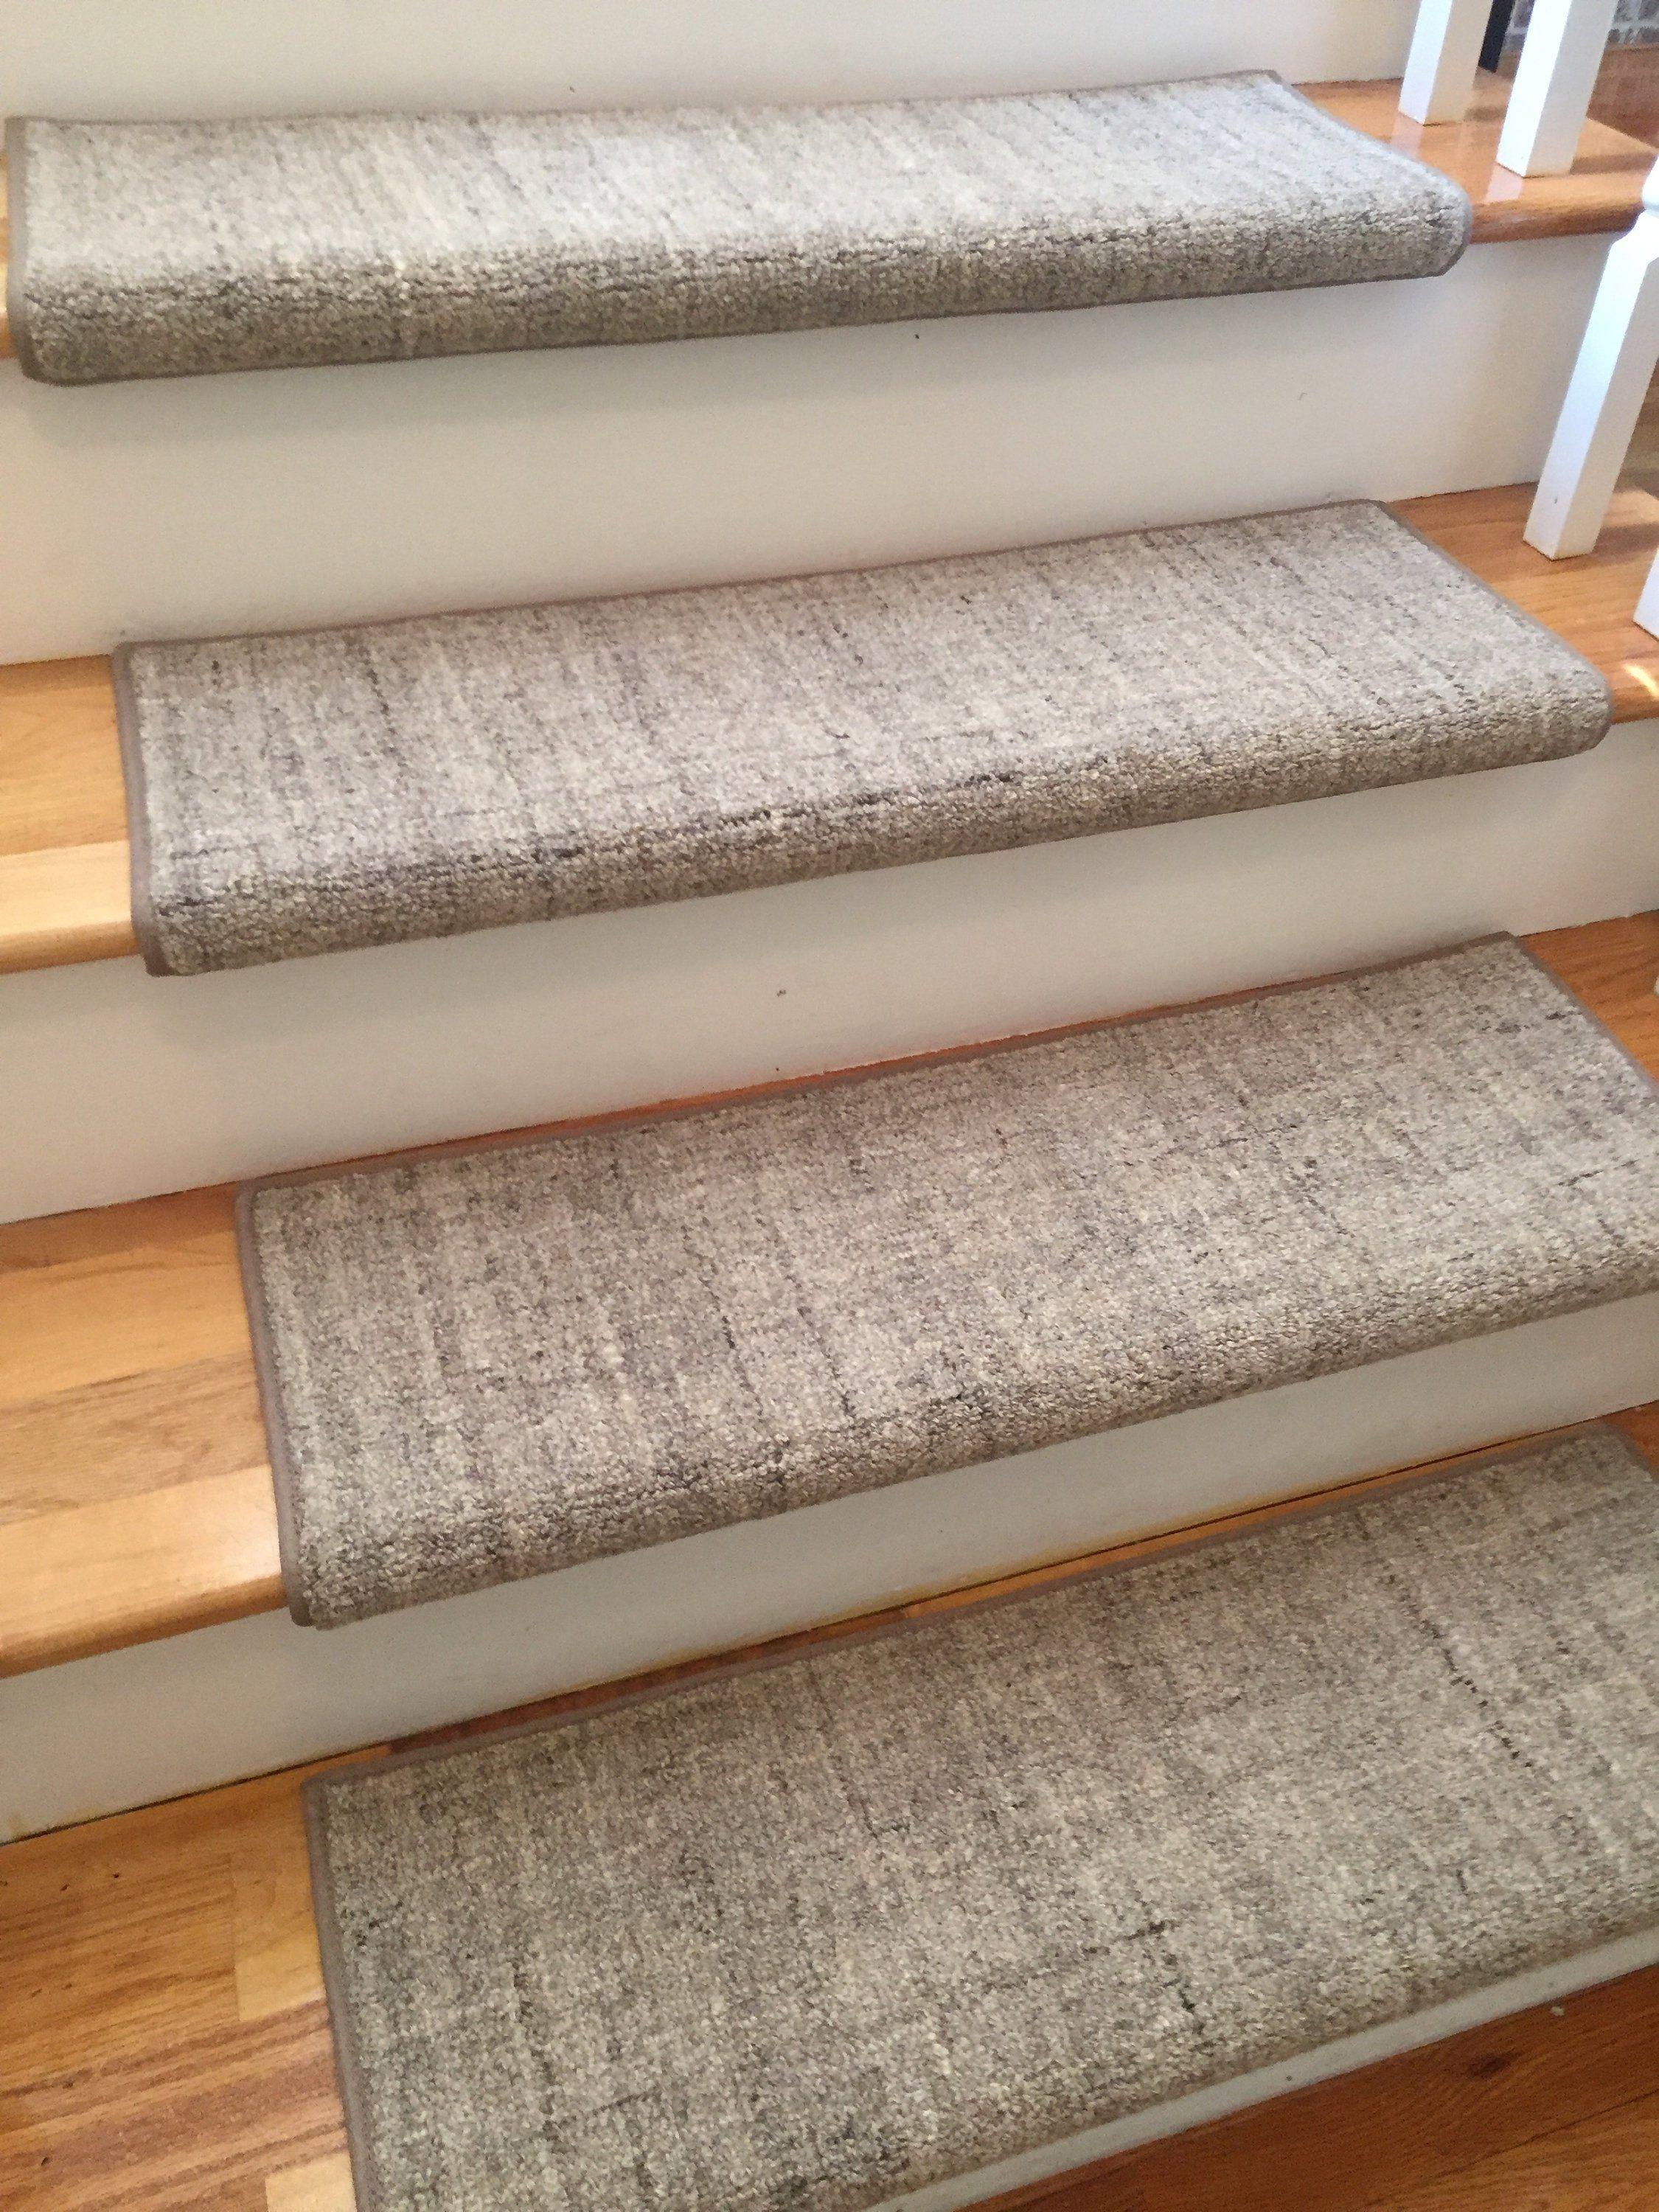 Terrain Hand Loomed 100 Wool Multiple Colors True Bullnose Padded Carpet Stair Tread For Safety Com Carpet Stair Treads Carpet Treads Stair Runner Carpet